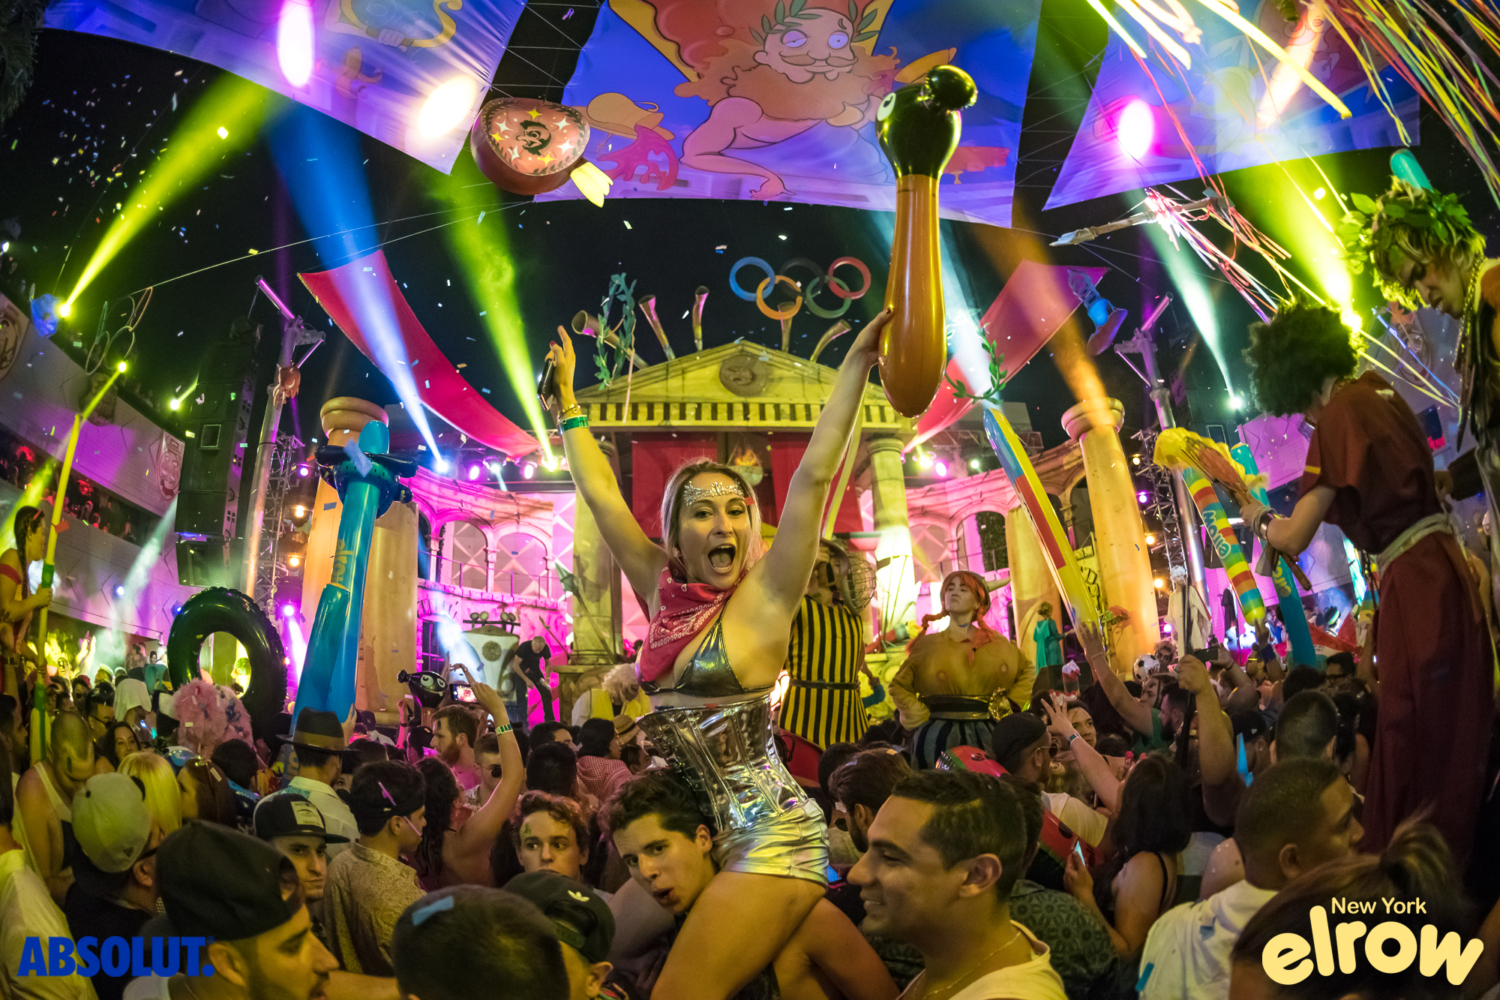 Making magic happen at Elrow Open Air – photos by aLIVE coverageELROW2018 0729 000920 9956 ALIVECOVERAGE